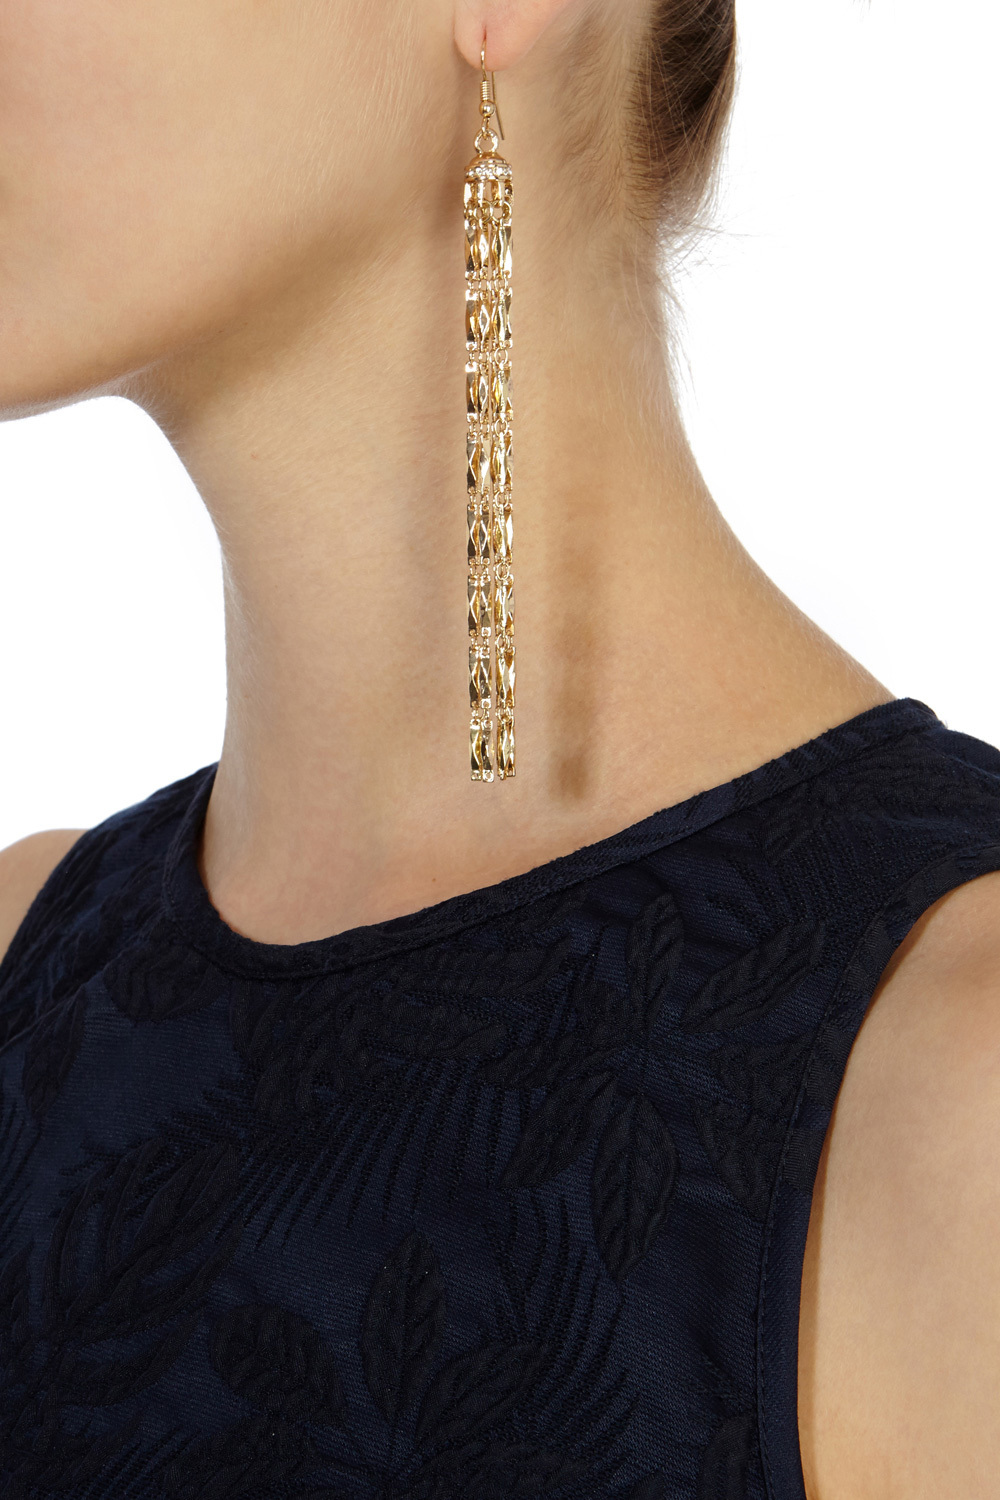 Chandelier Longline Earrings - predominant colour: gold; occasions: evening, occasion; style: chandelier; length: extra long; size: large/oversized; material: chain/metal; fastening: pierced; finish: metallic; embellishment: crystals/glass; season: s/s 2016; wardrobe: event